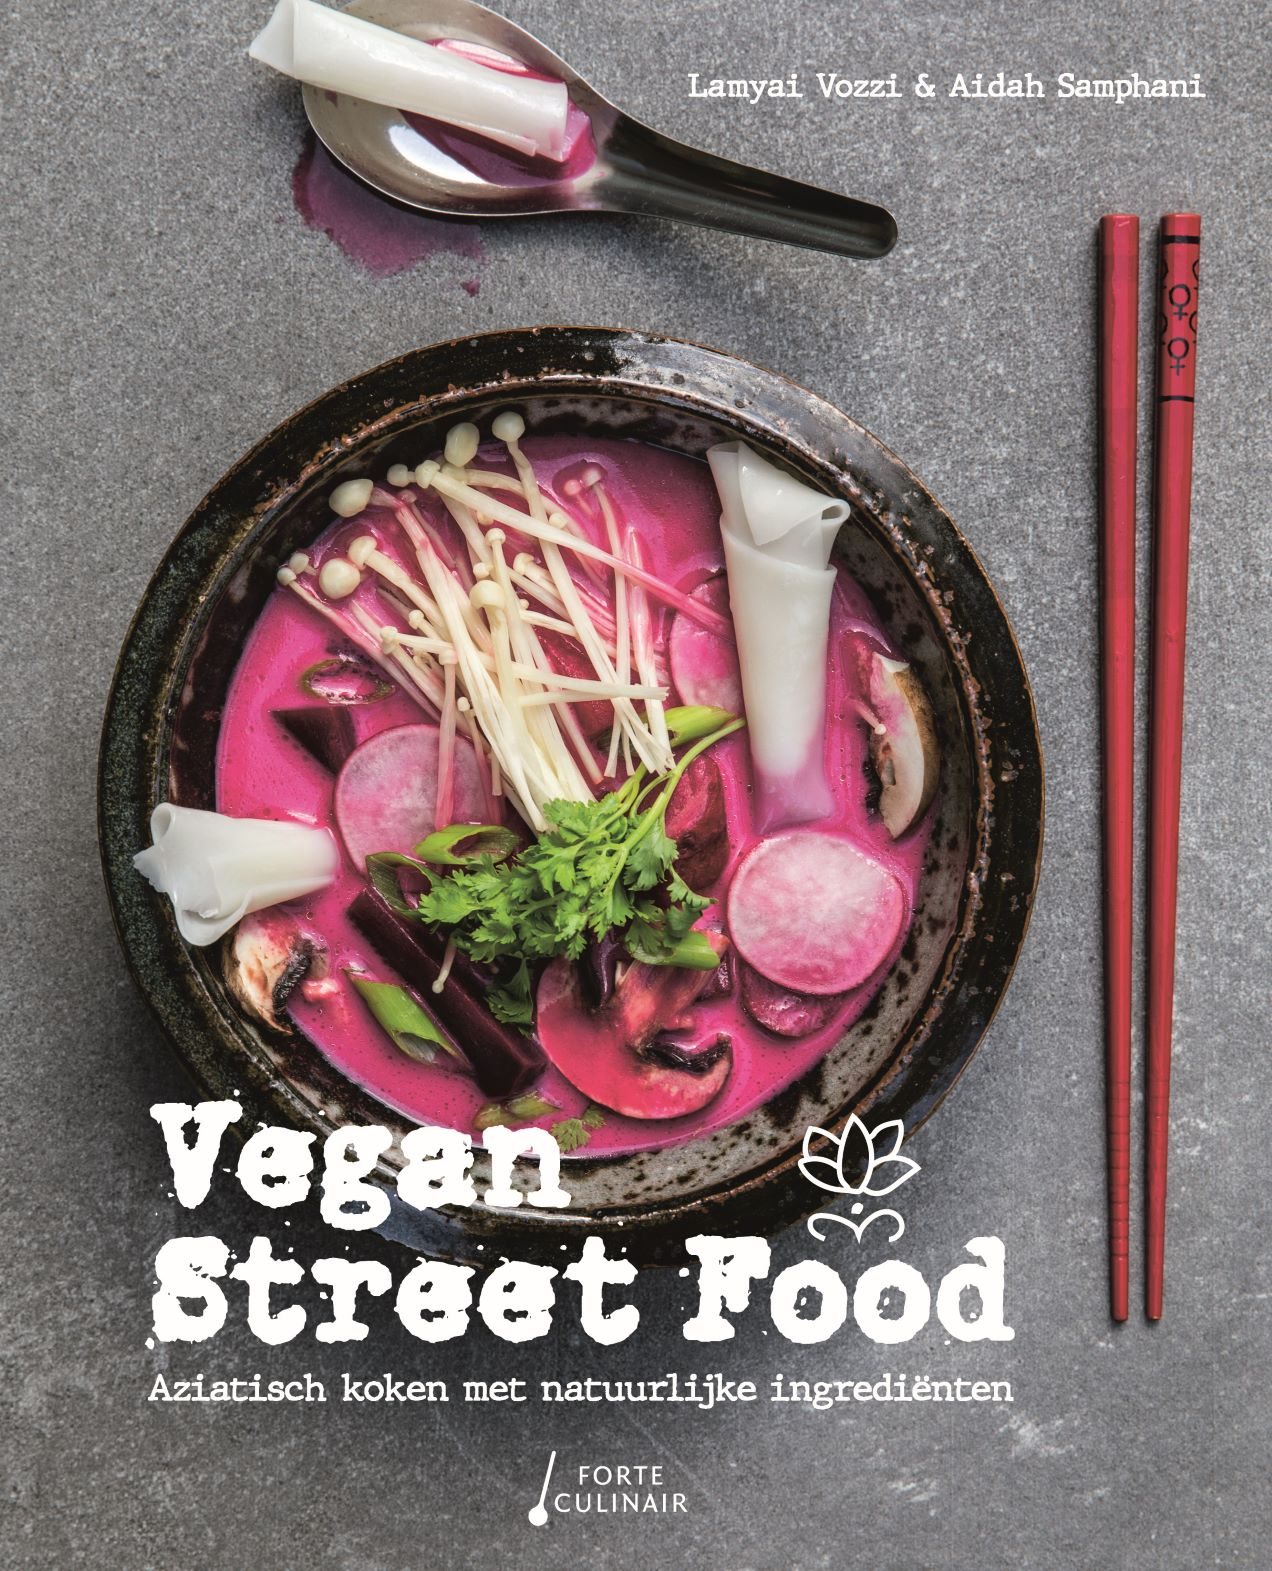 Vegan Streetfood